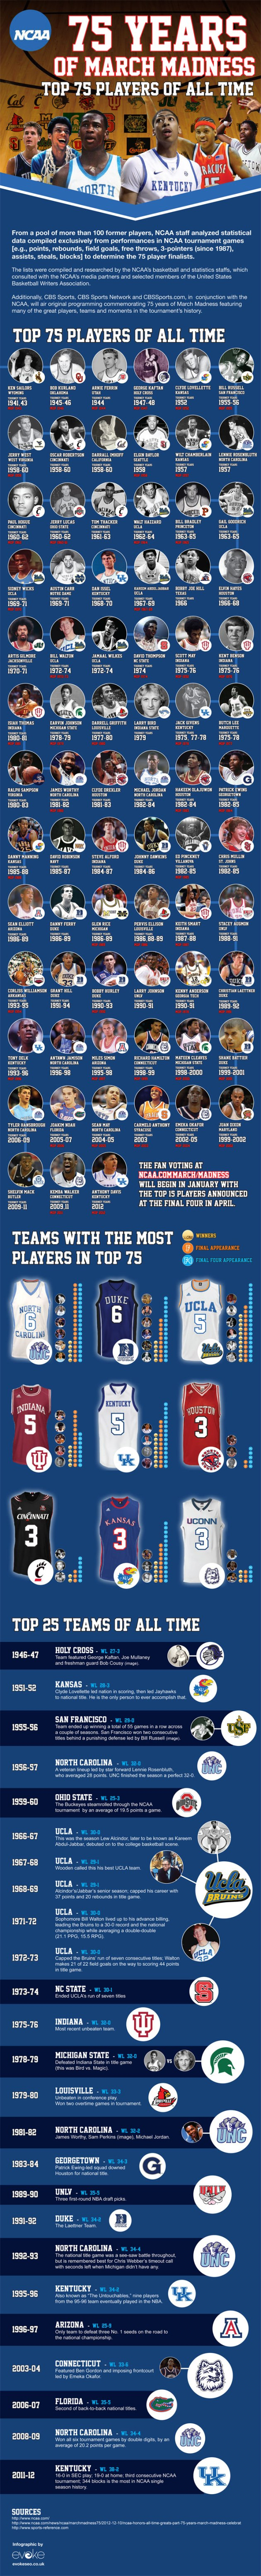 ncaa-75-years-of-march-madness-infographic--the-top-75-basketball-players-of-all-time